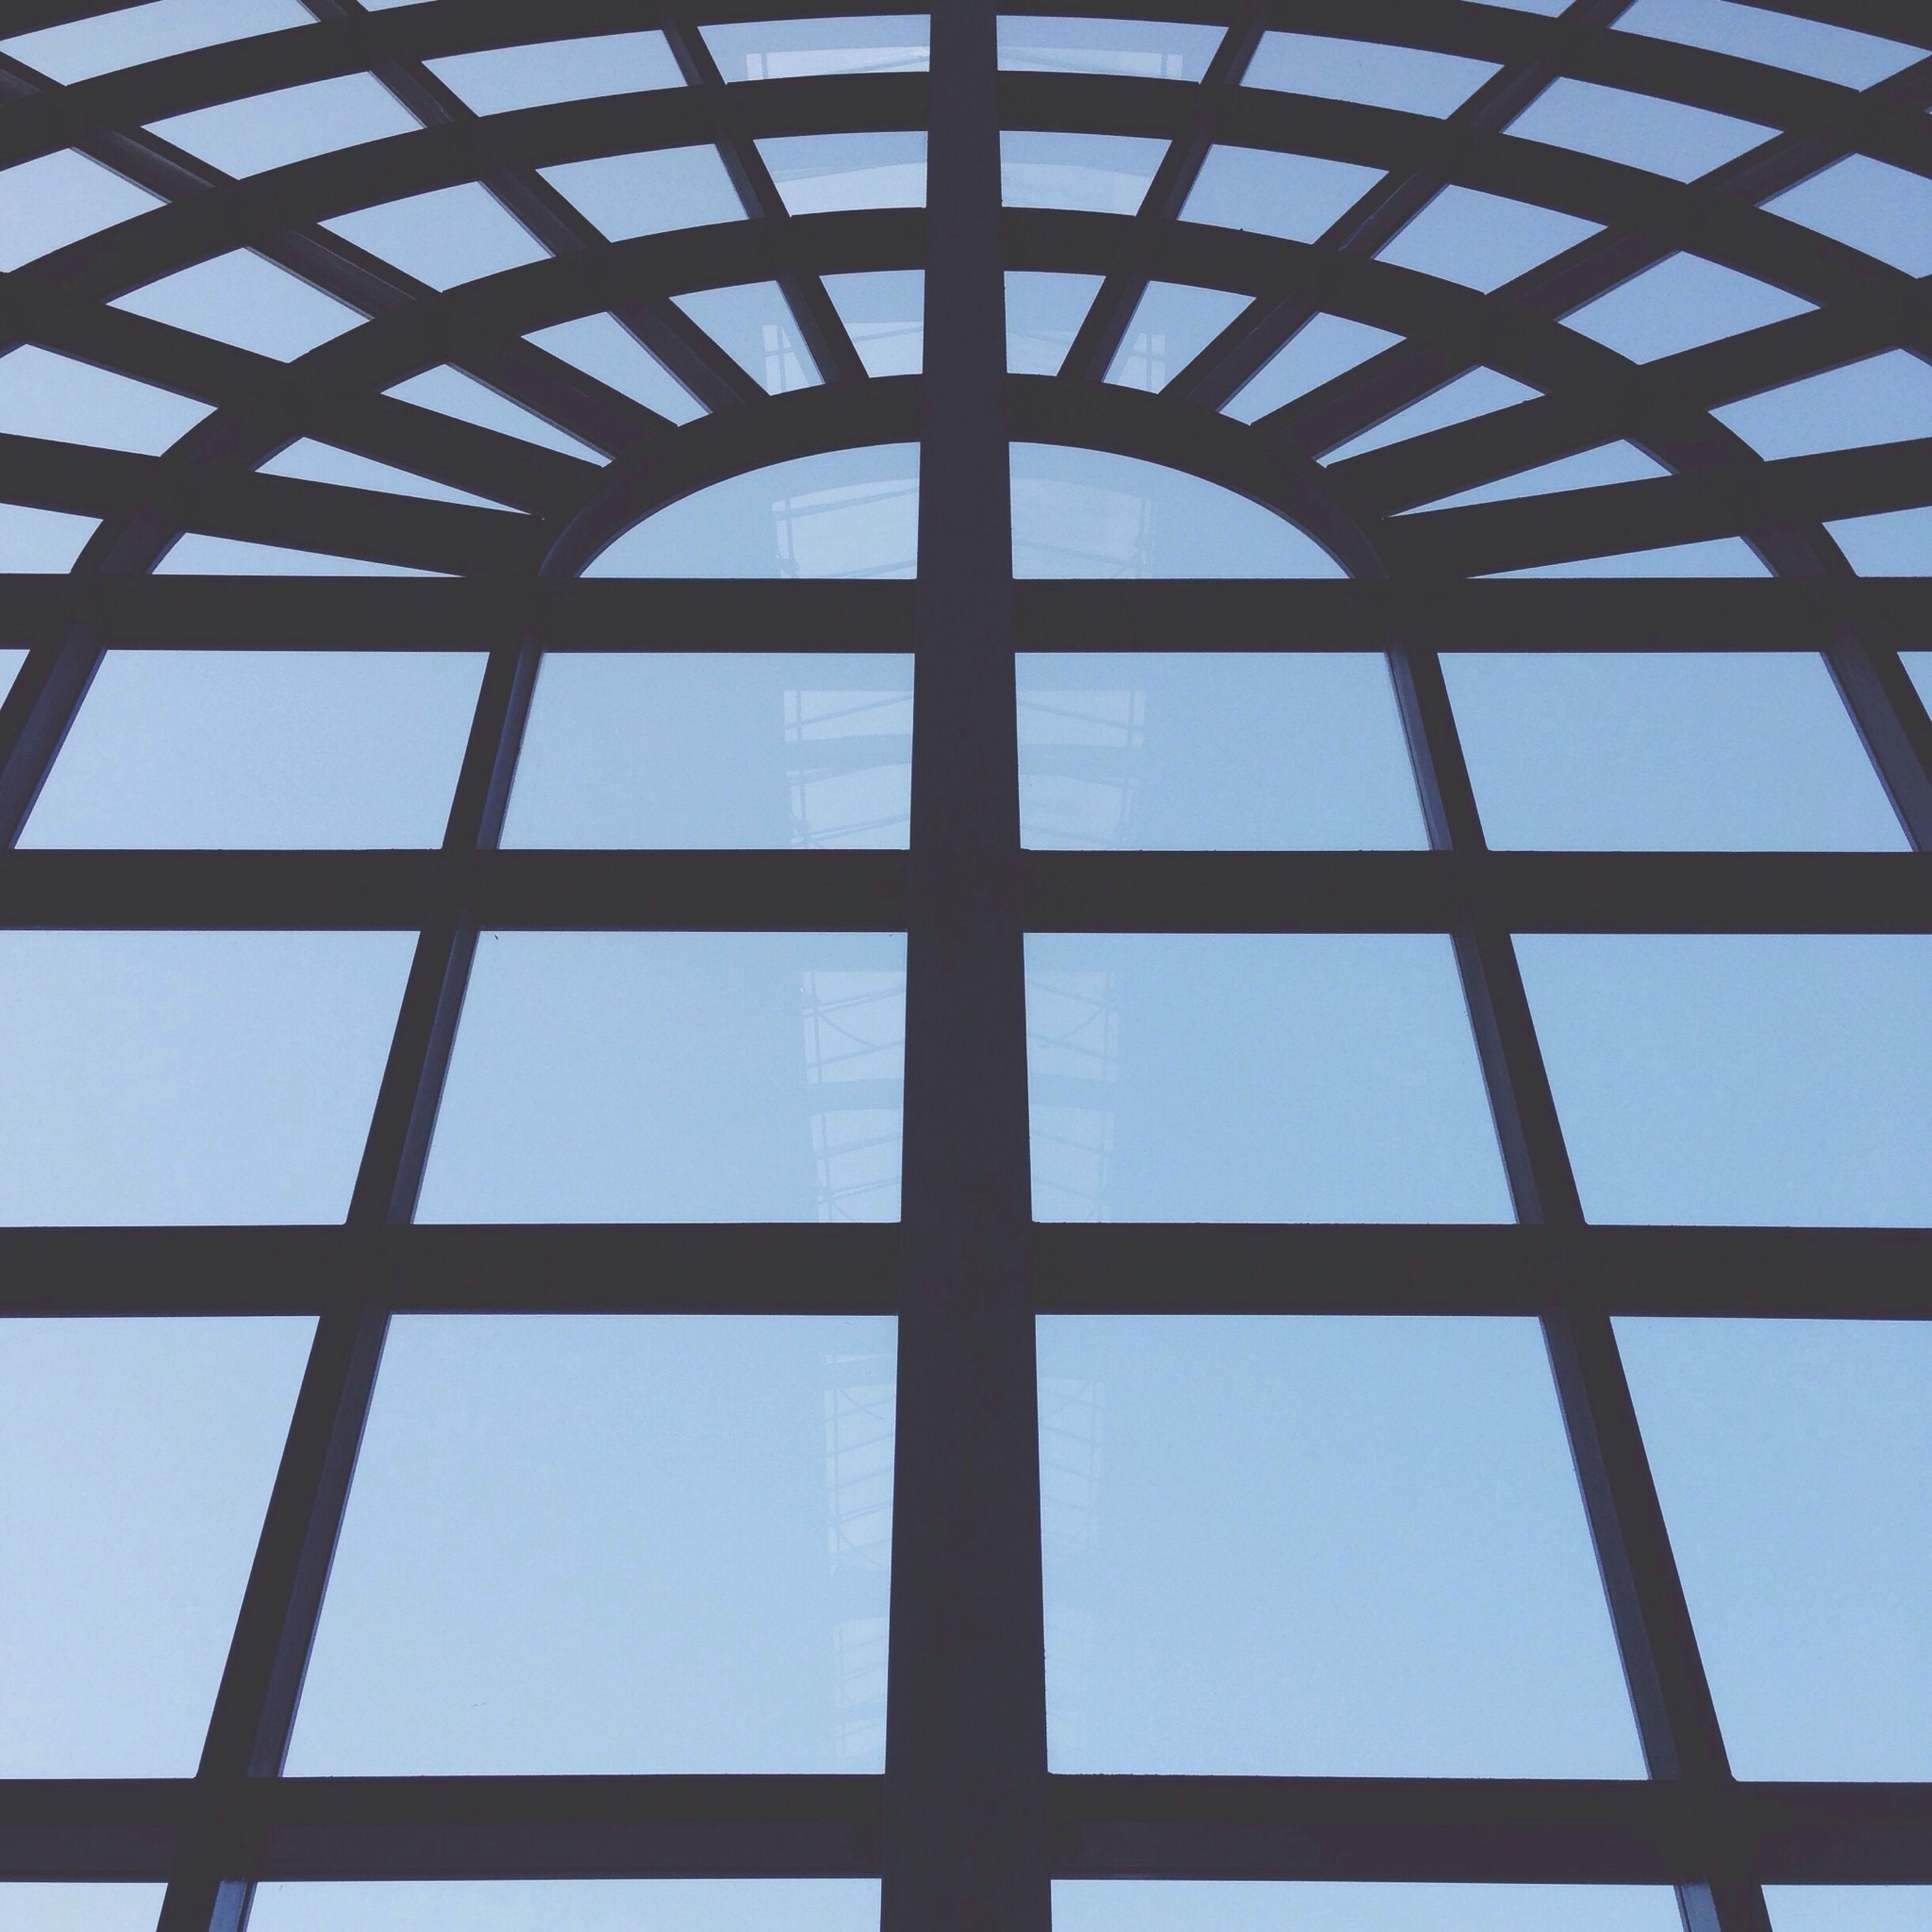 architecture, low angle view, built structure, glass - material, pattern, geometric shape, indoors, backgrounds, full frame, transparent, sky, blue, window, modern, reflection, day, clear sky, building exterior, no people, glass